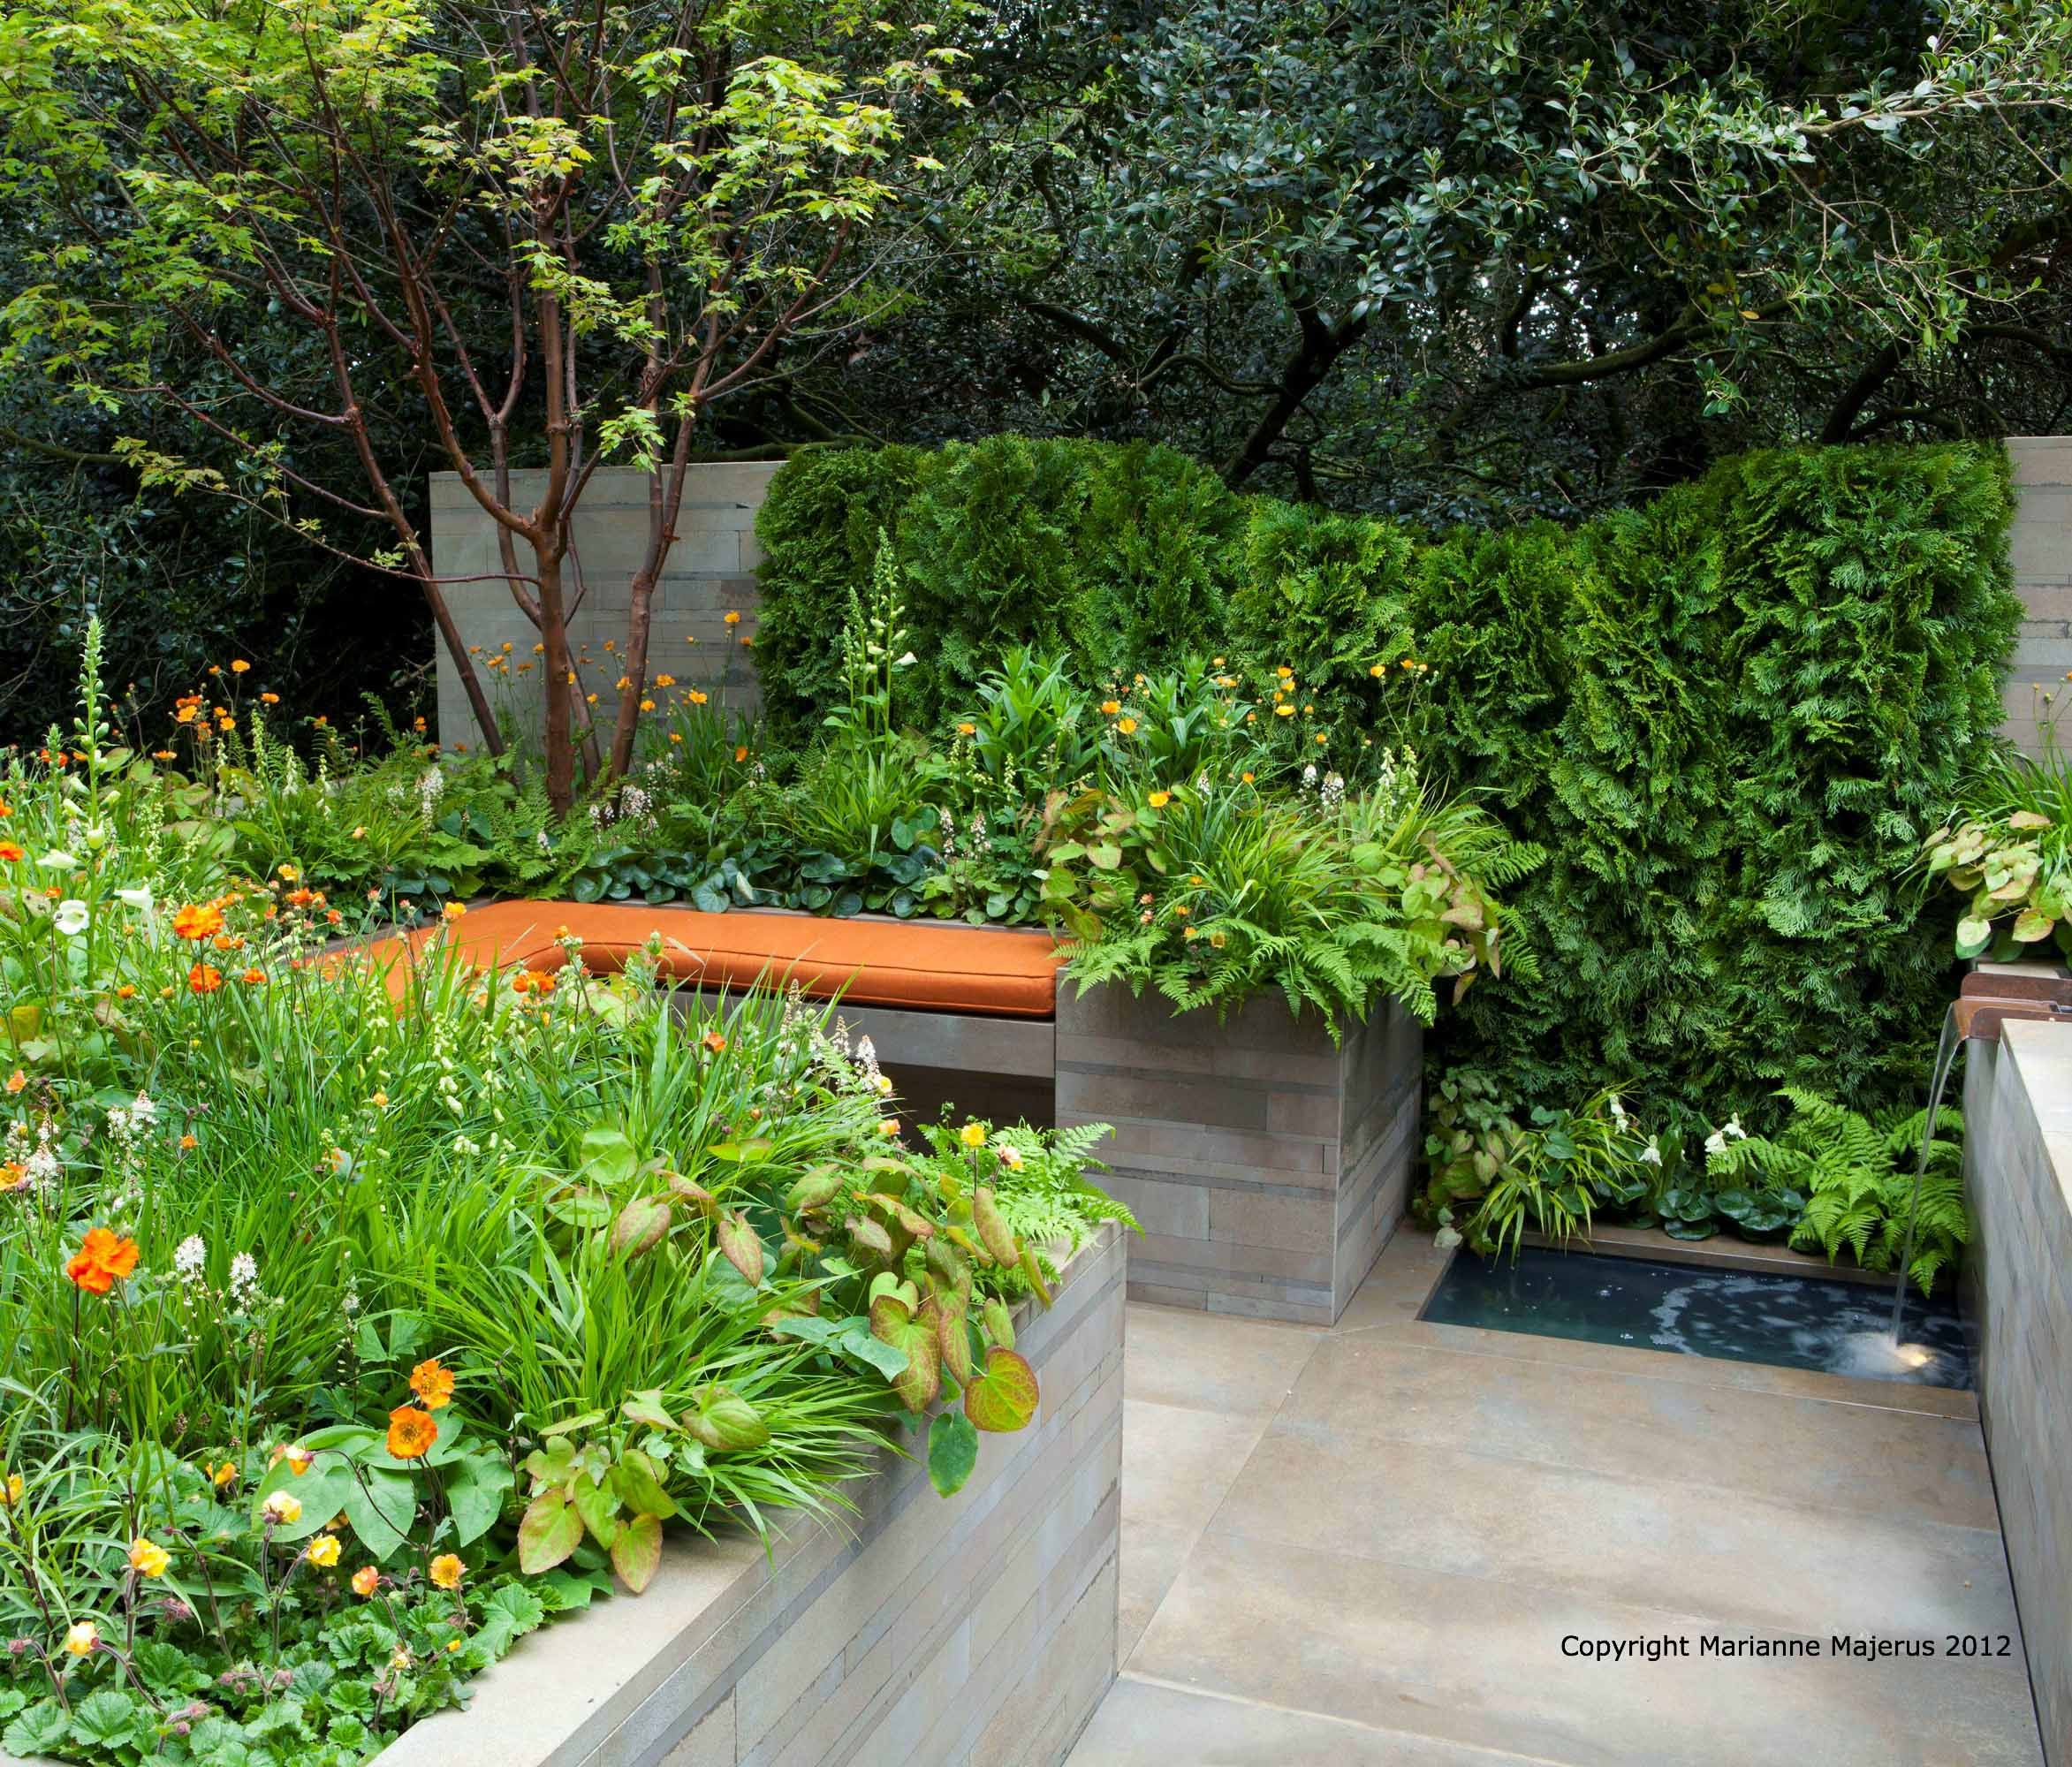 Our First Chelsea Show Garden In The Artisan Category, Sponsored By APCO  Worldwide. The